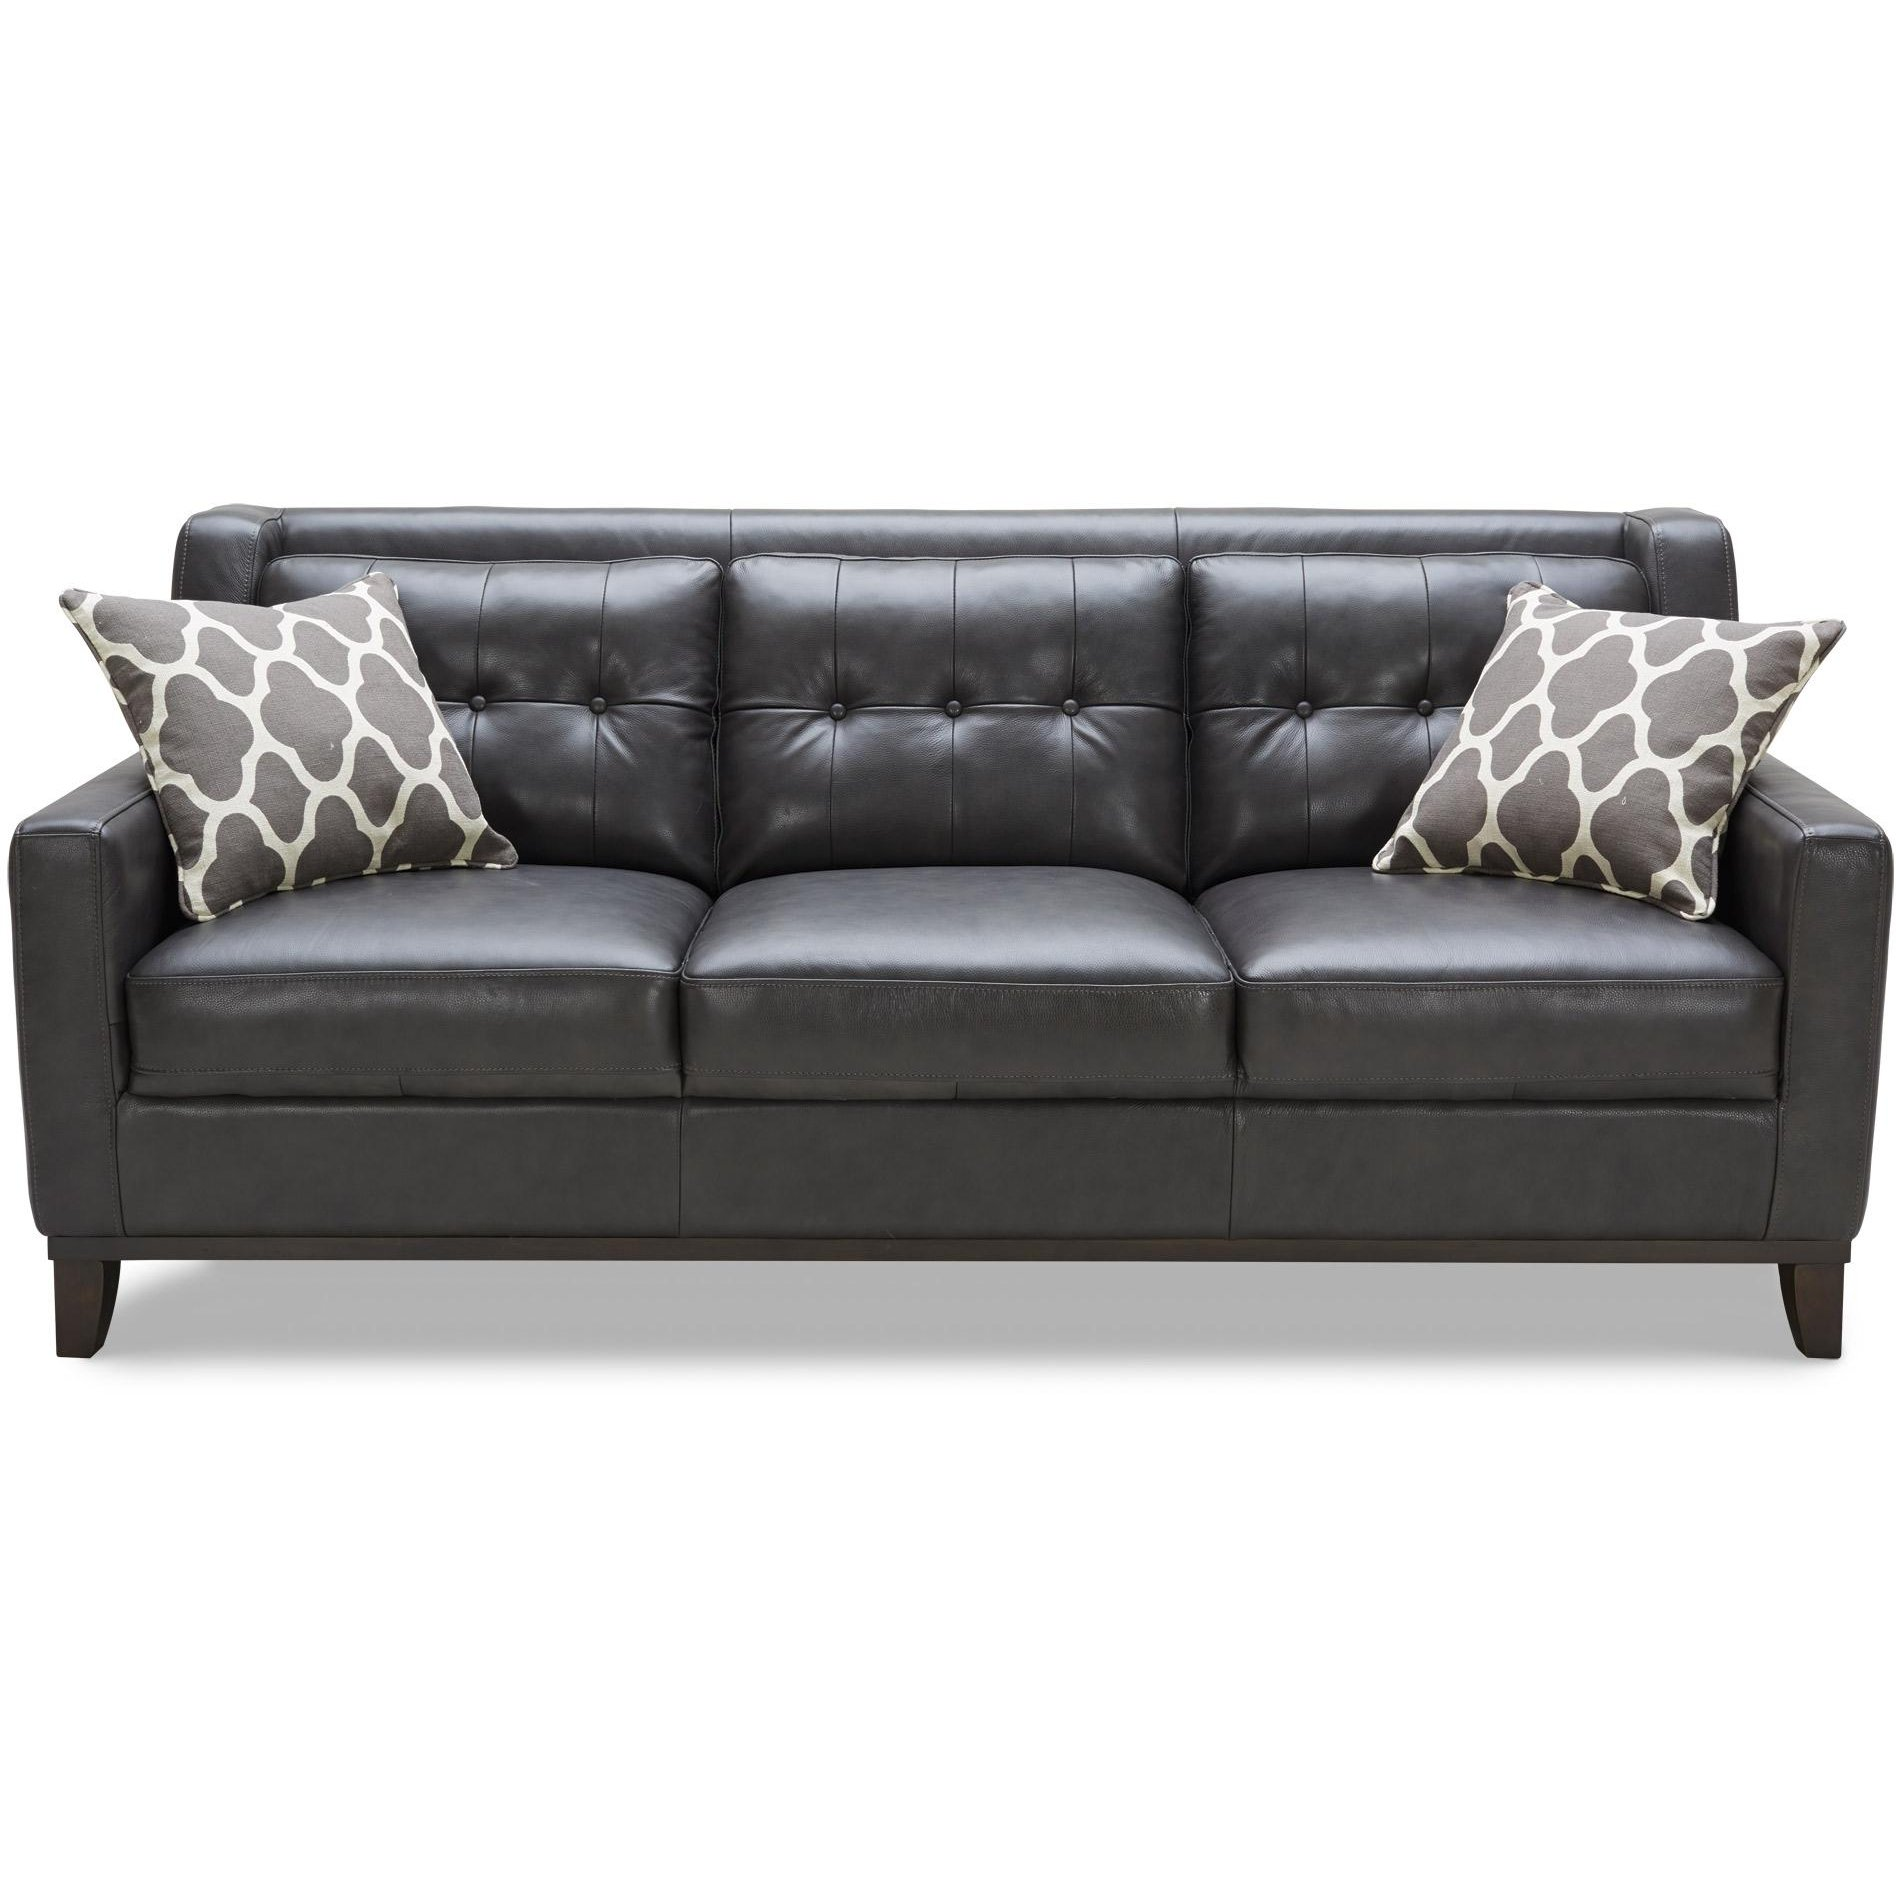 Contemporary Charcoal Leather Sofa Nigel